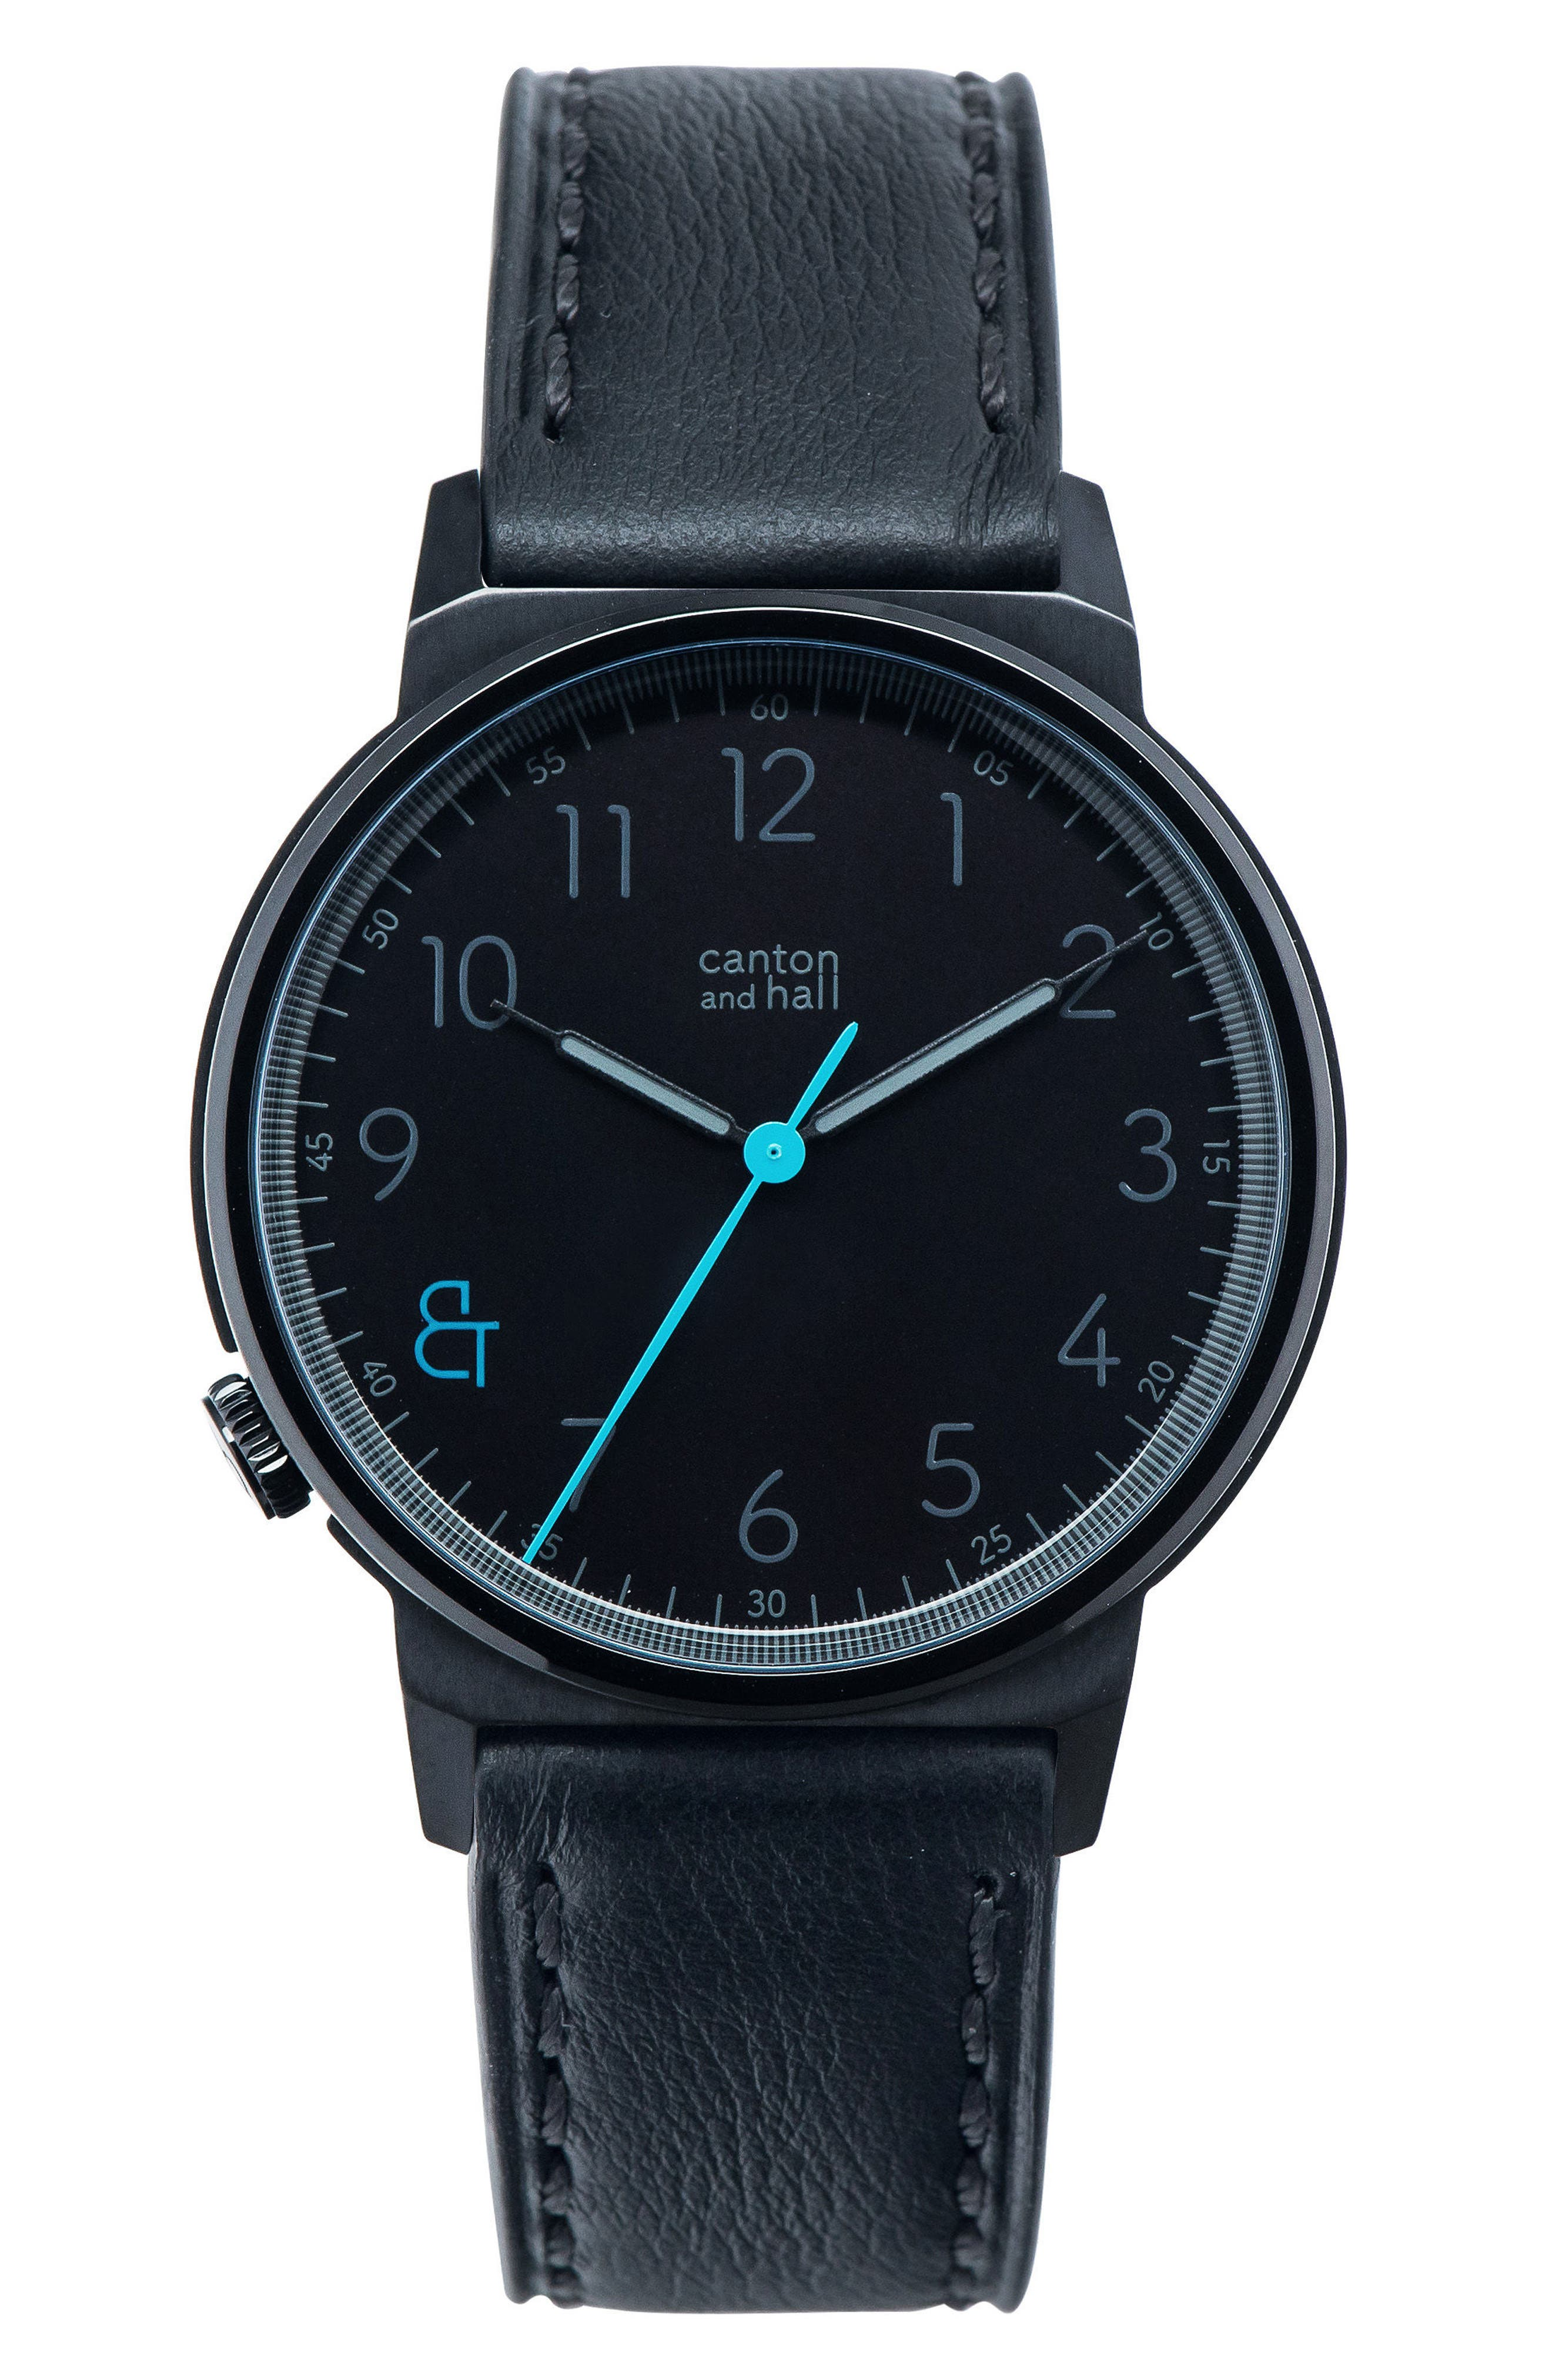 Main Image - Canton and Hall Leather Strap Watch, 40mm